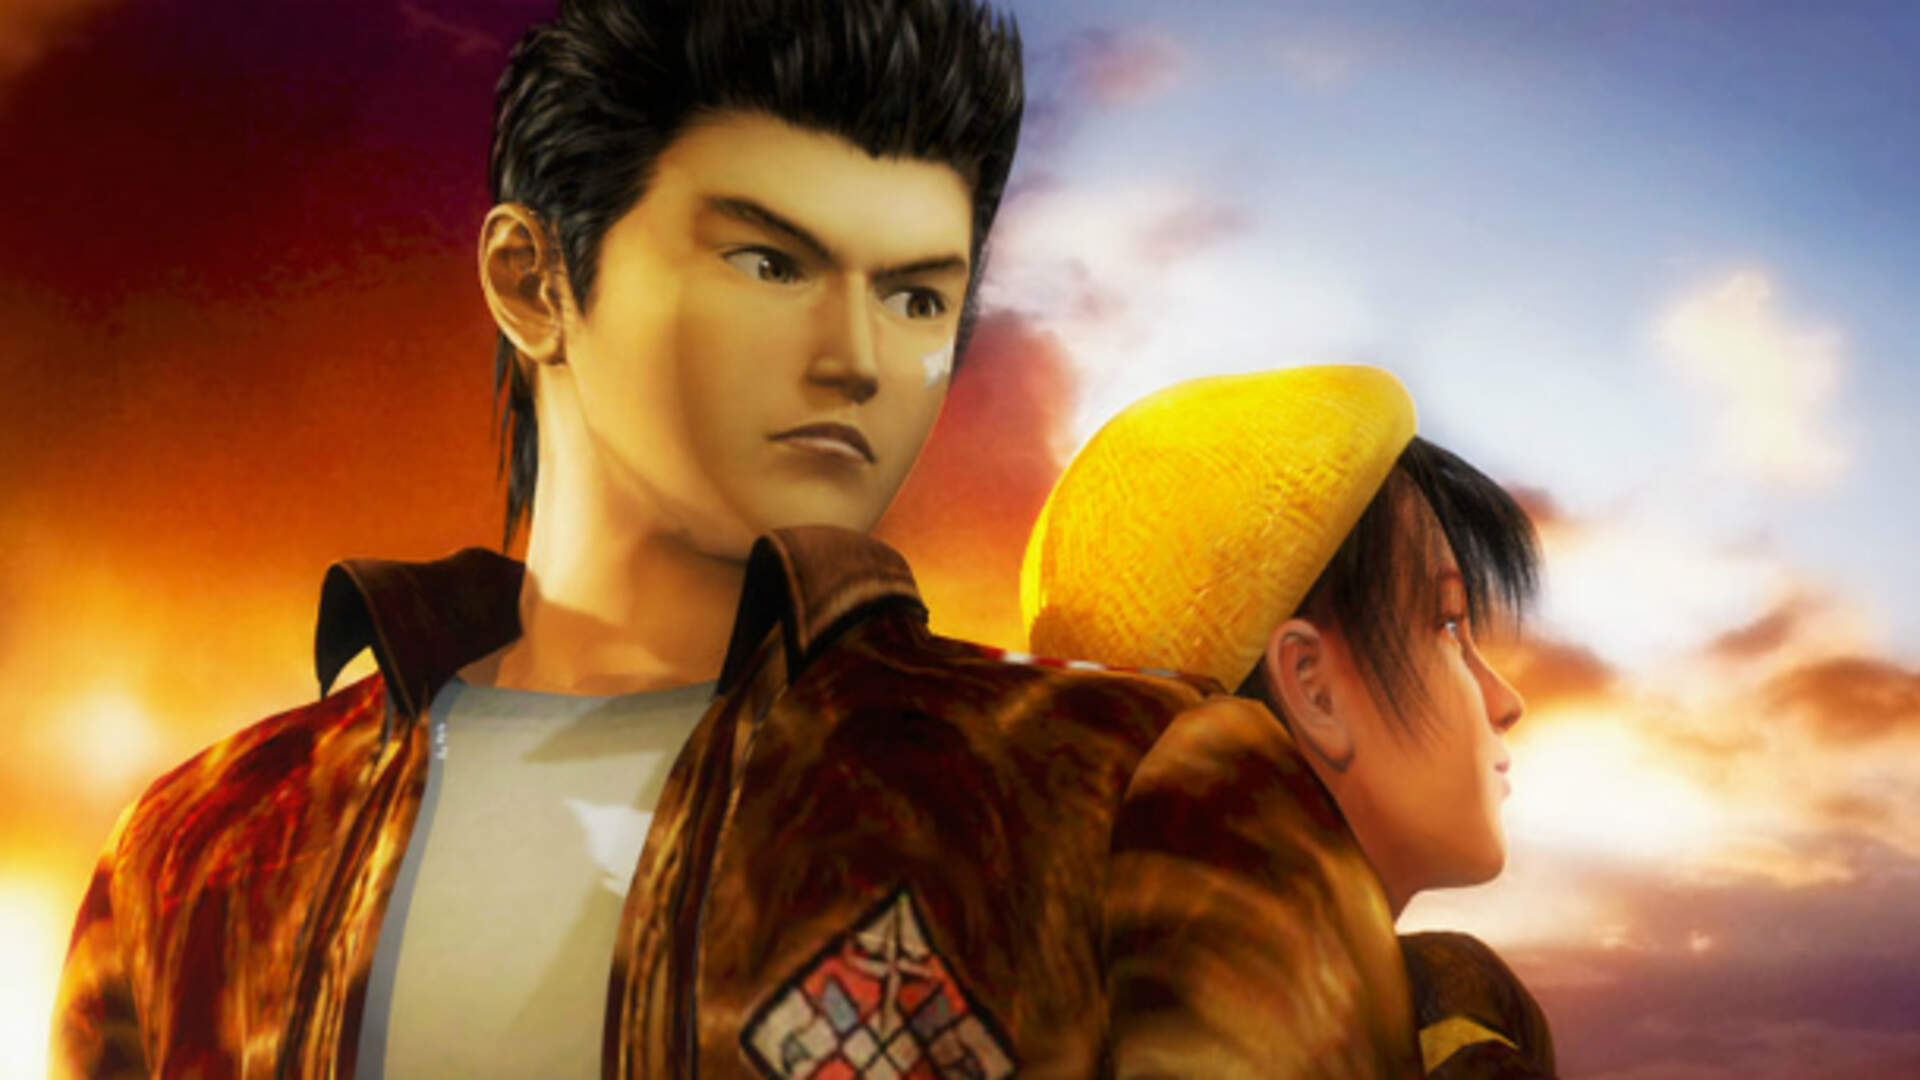 Shenmue 3 Now Releasing in 2019, No Hot Forklift Action in 2018